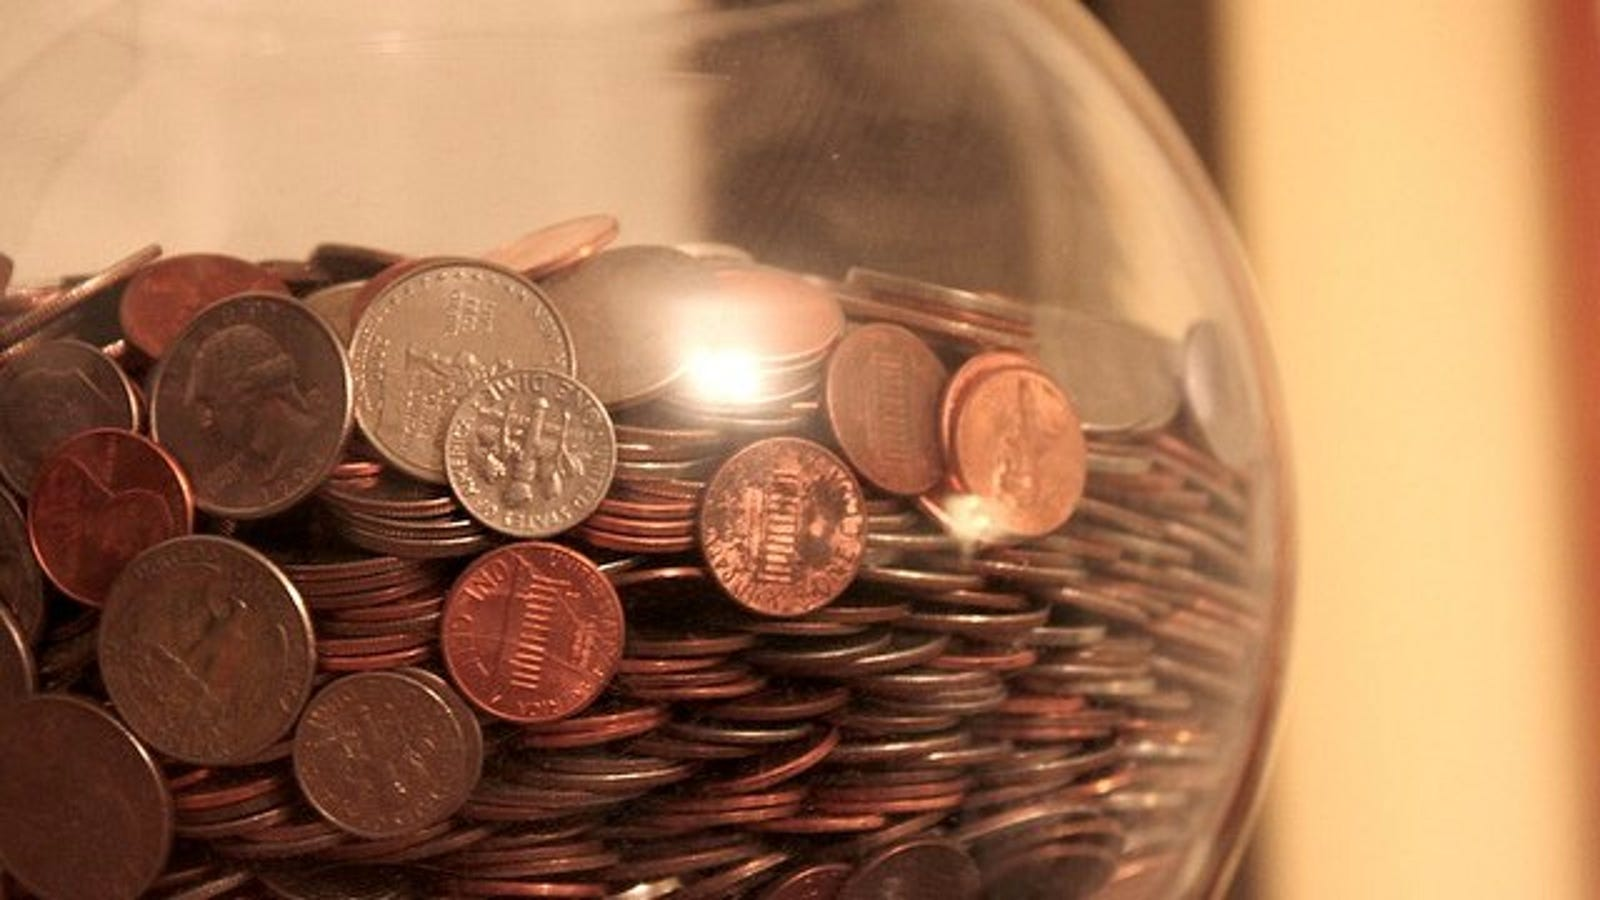 How to Estimate How Much Money's in Your Change Jar (Without